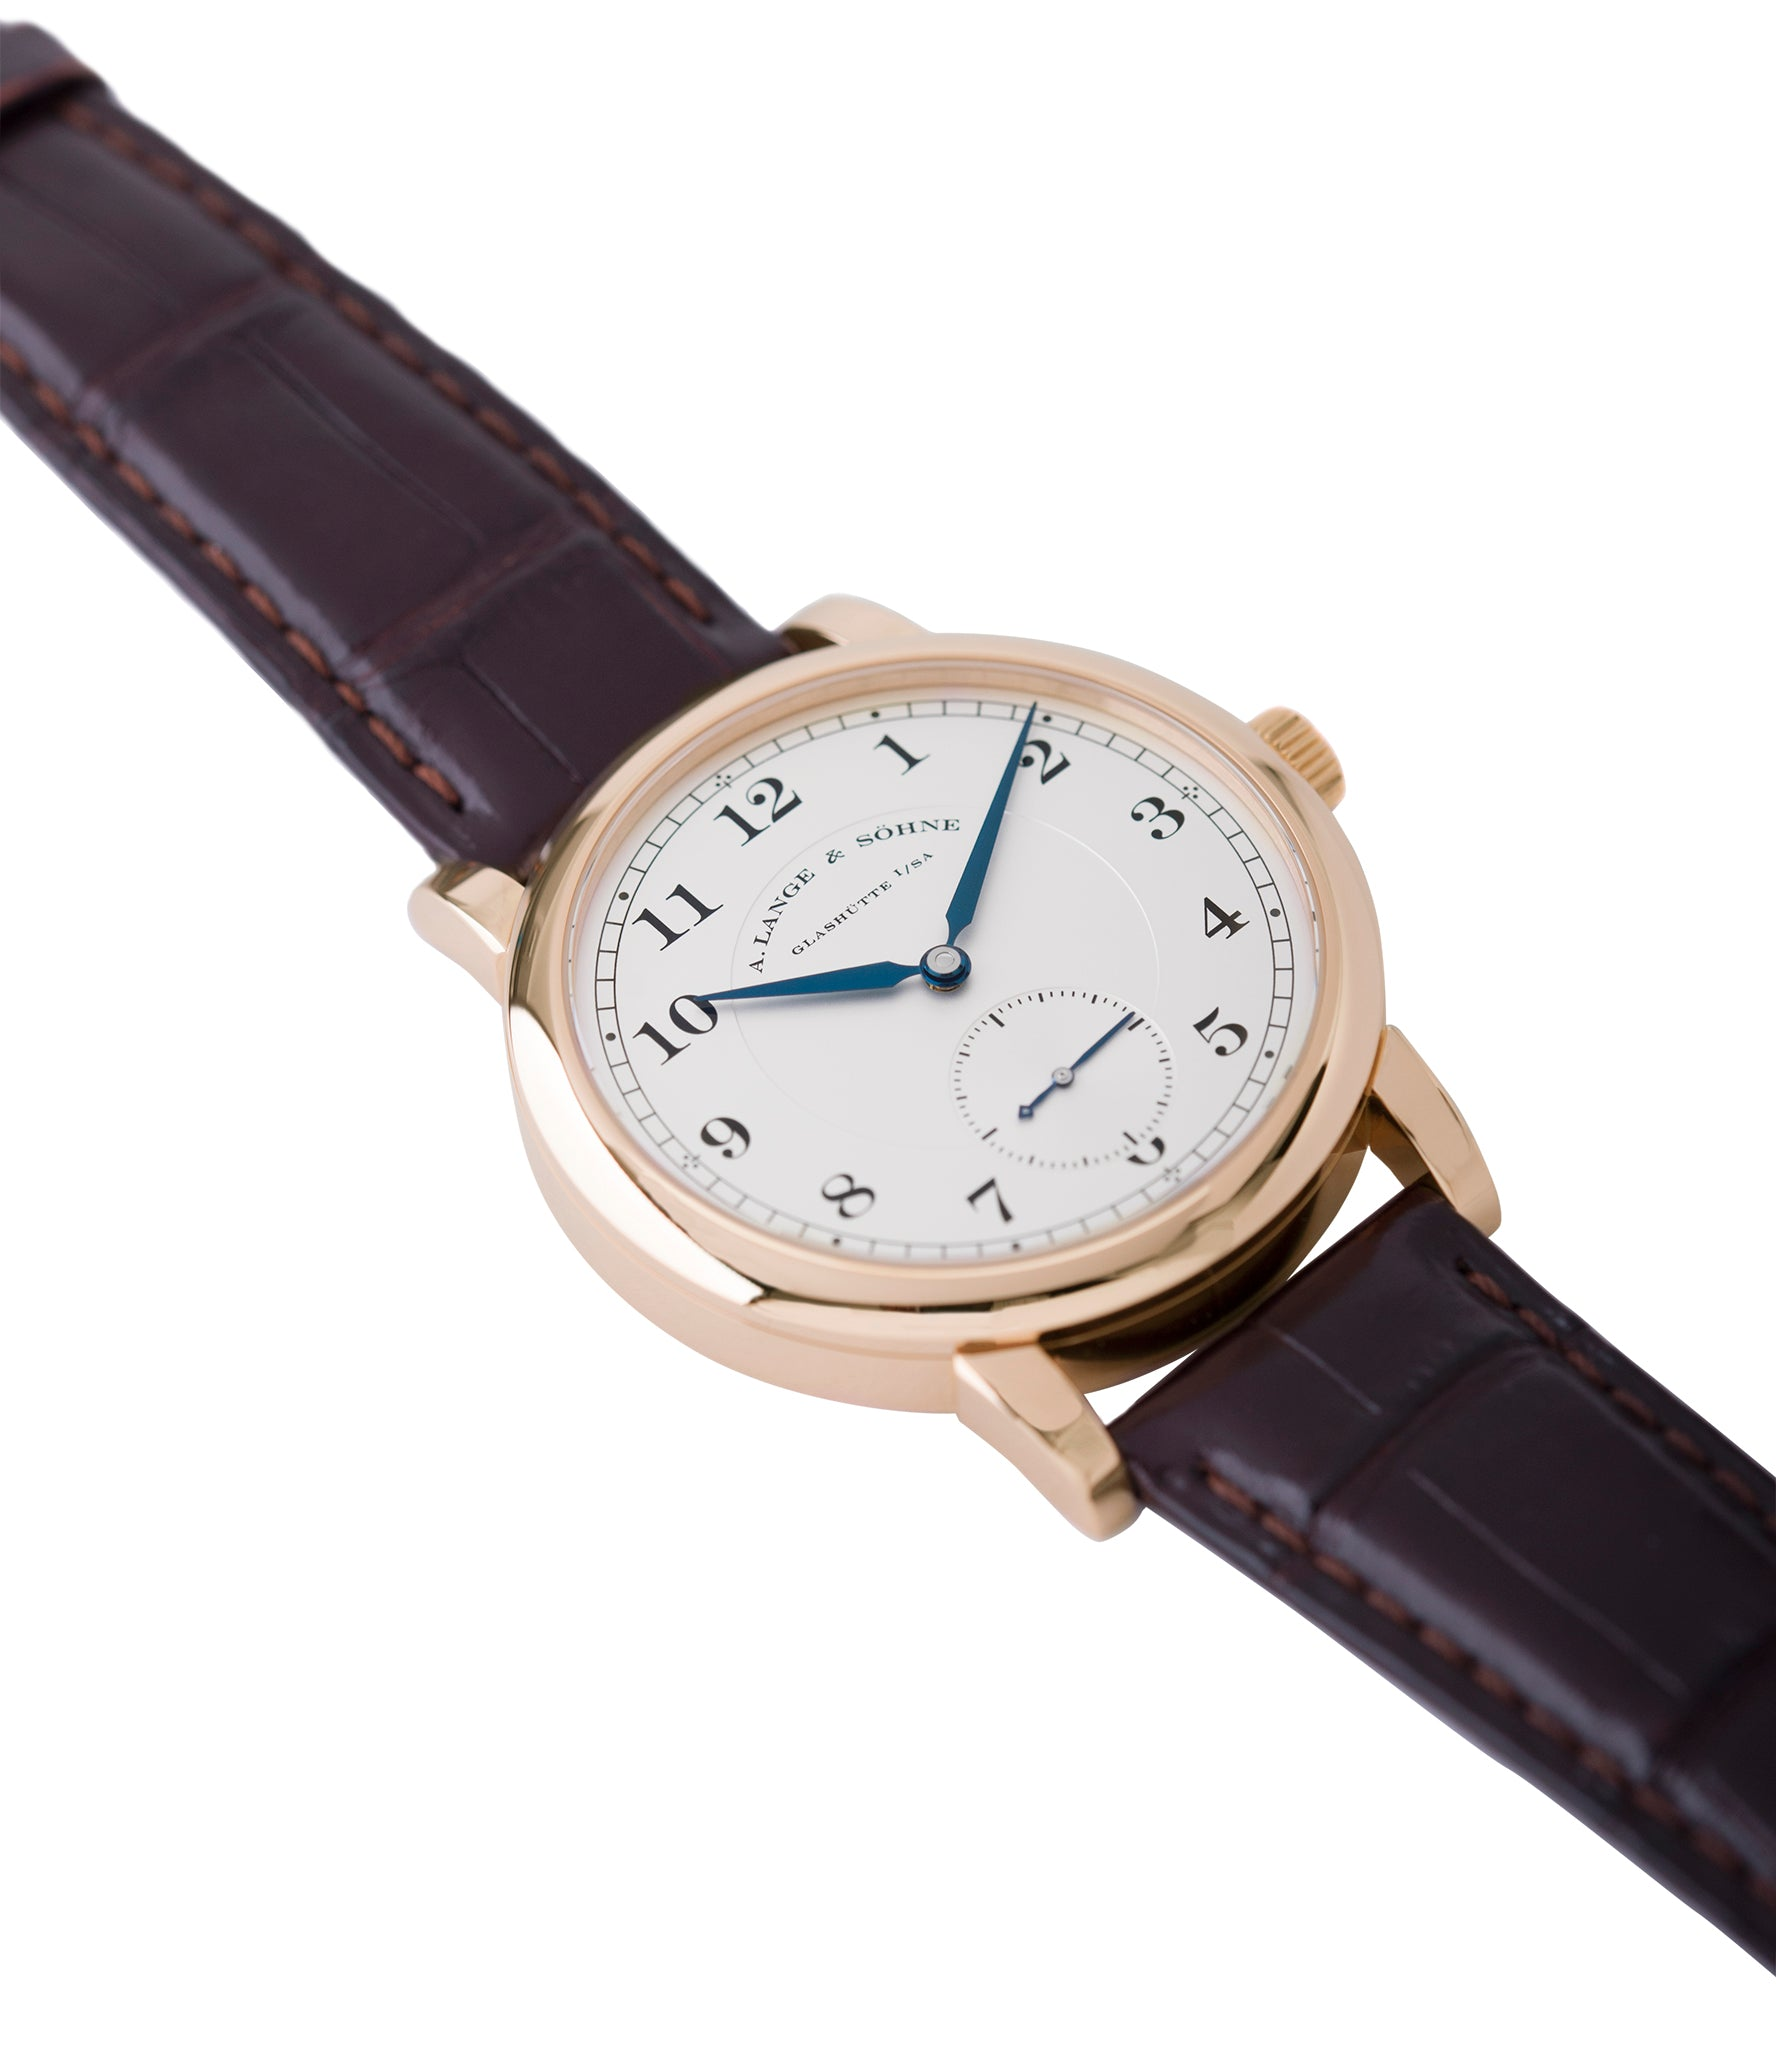 for sale A. Lange & Sohne 1815 233.032 rose gold pre-owned dress watch for sale online at A Collected Man London Uk specialist of preowned luxury watches